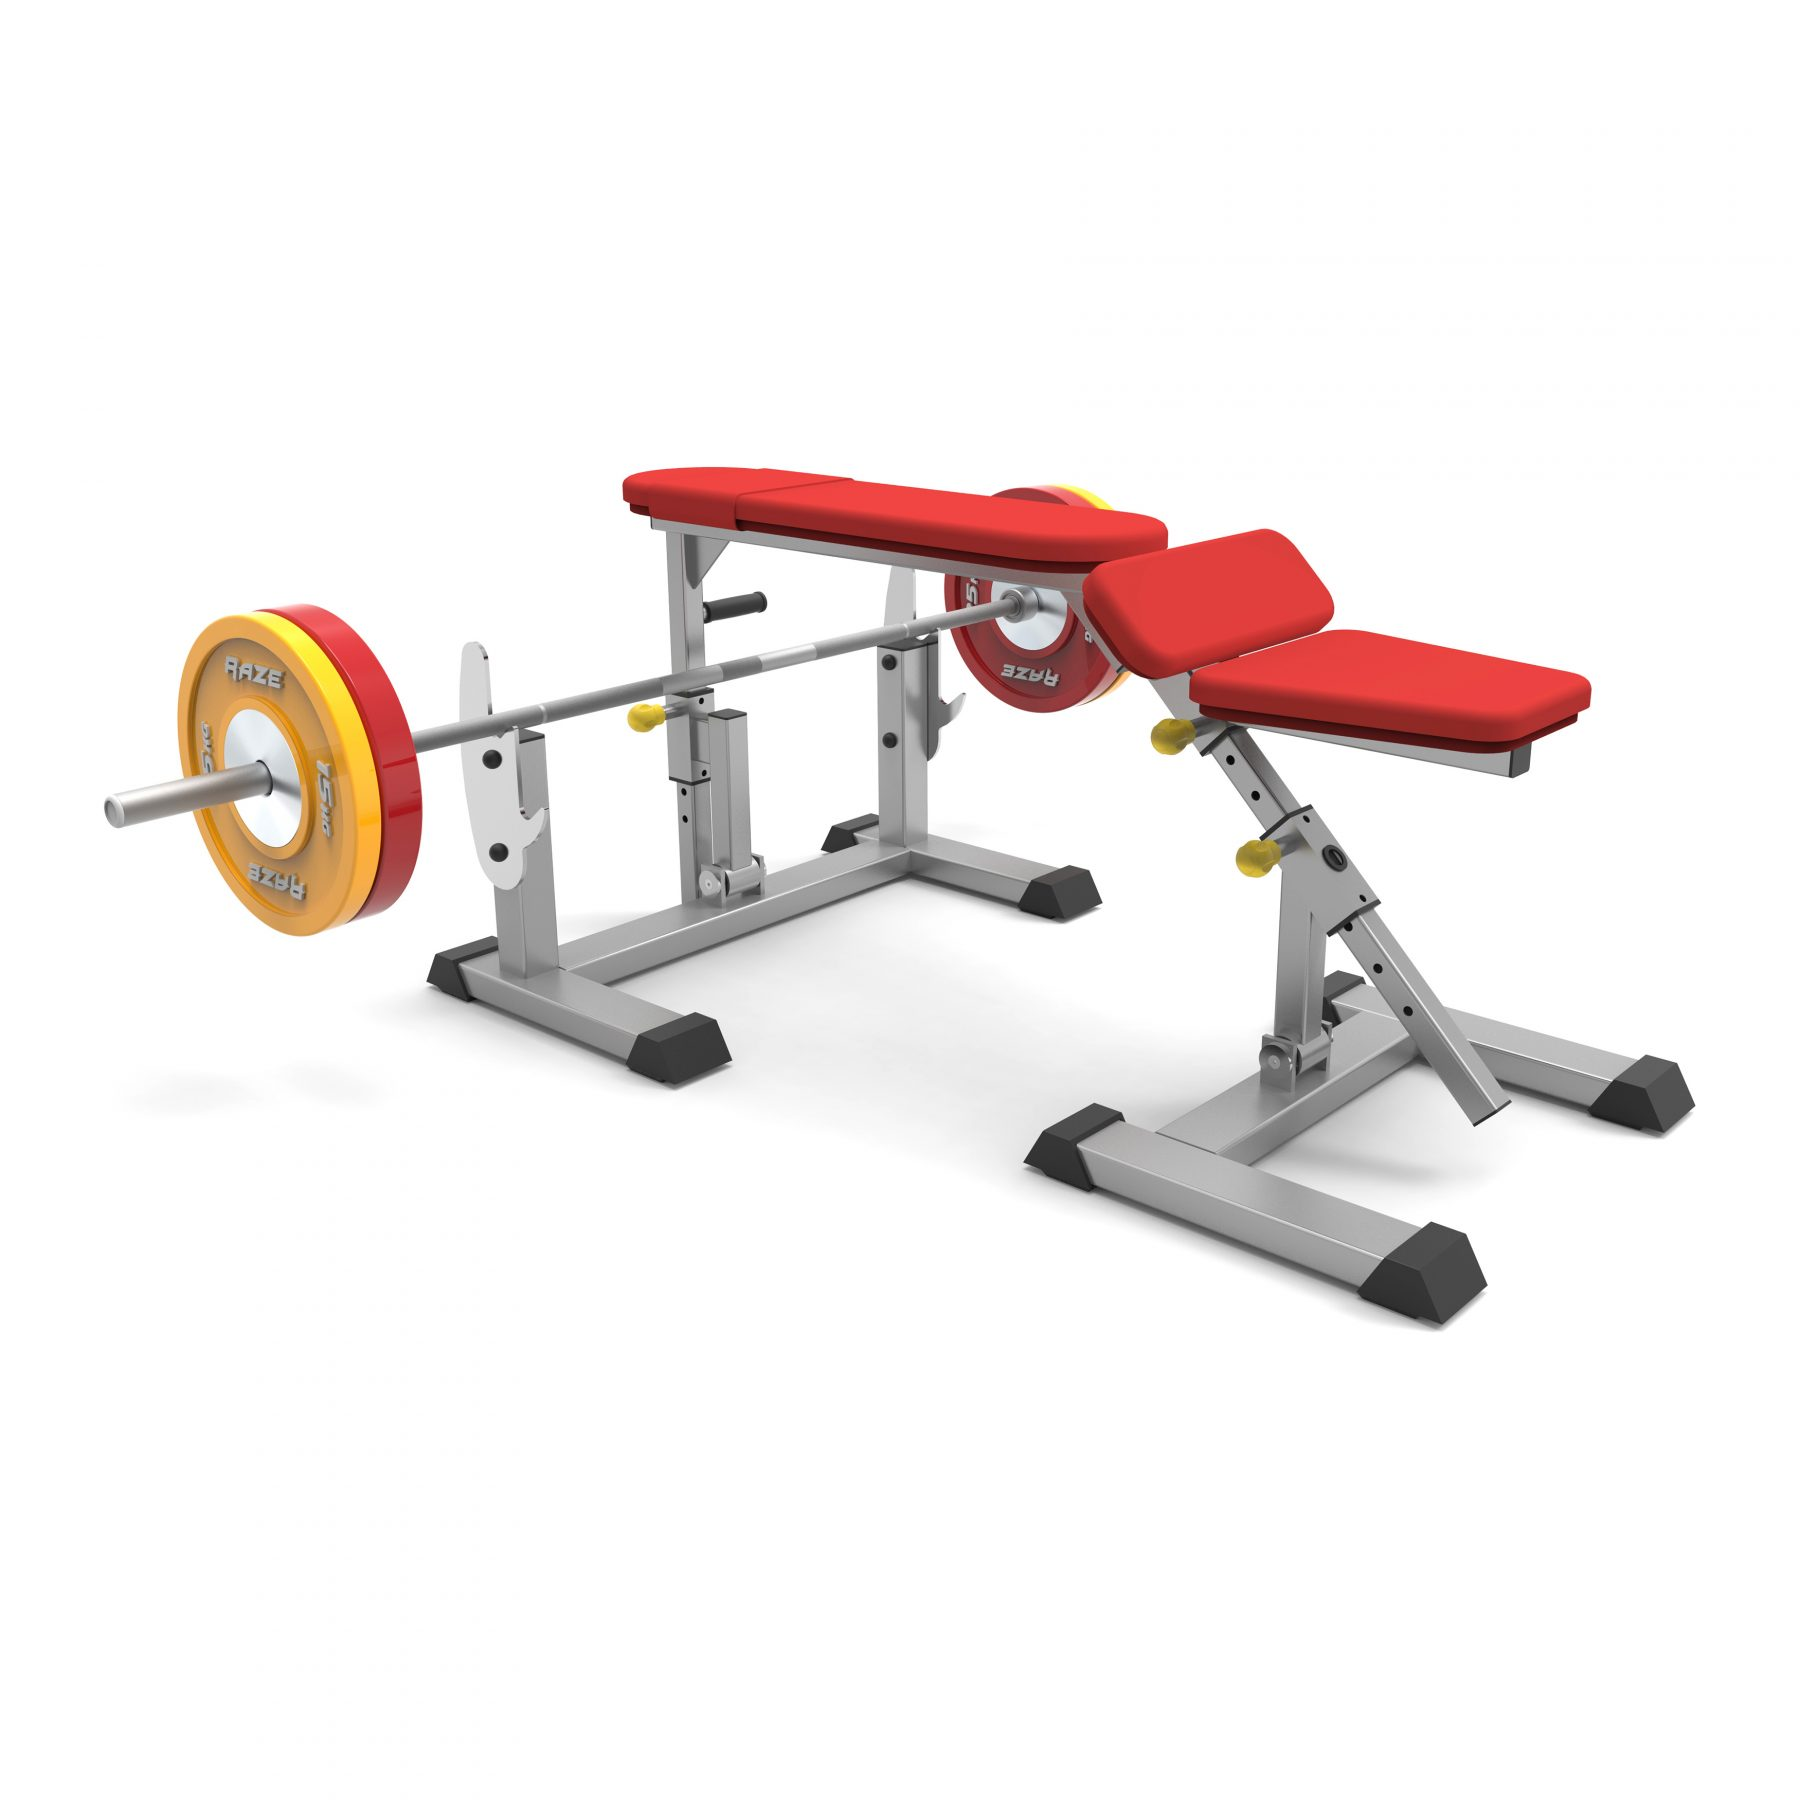 adjustable prone row bench PB725